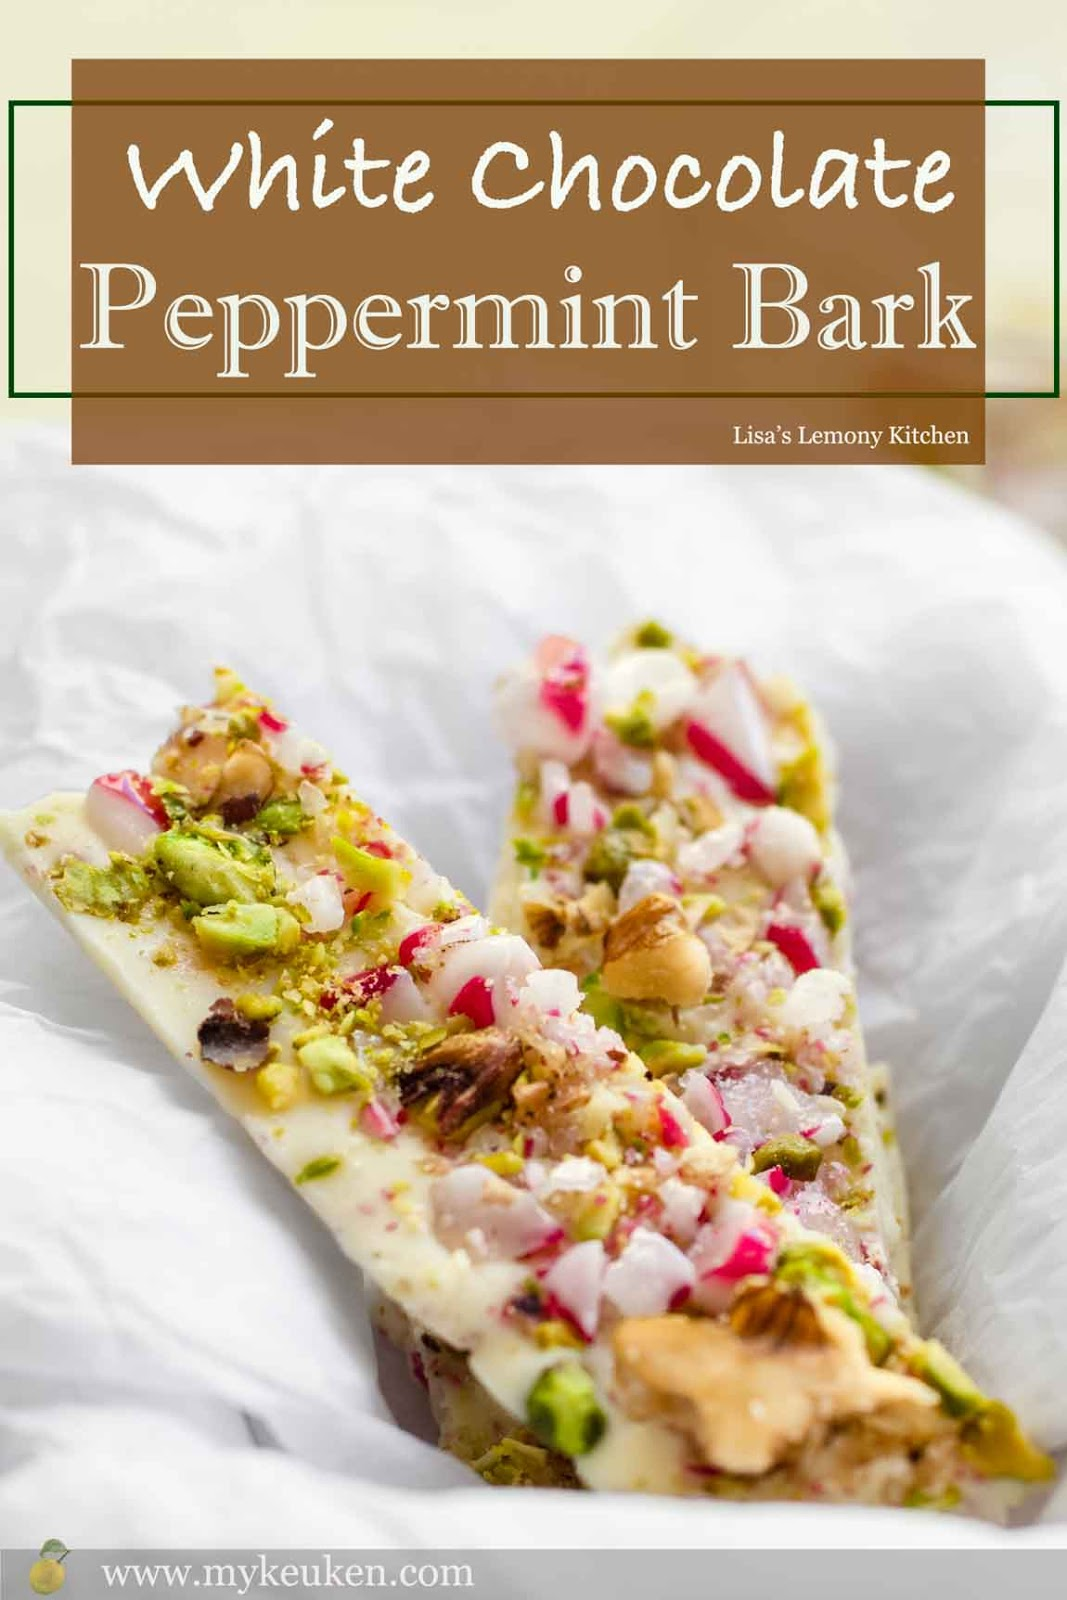 White chocolate peppermint bark recipe.  Simple recipe for homemade peppermint bark topped with crushed candy canes, chopped pistachios and chopped walnut. This delicious peppermint bark makes an excellent gifts this holiday season